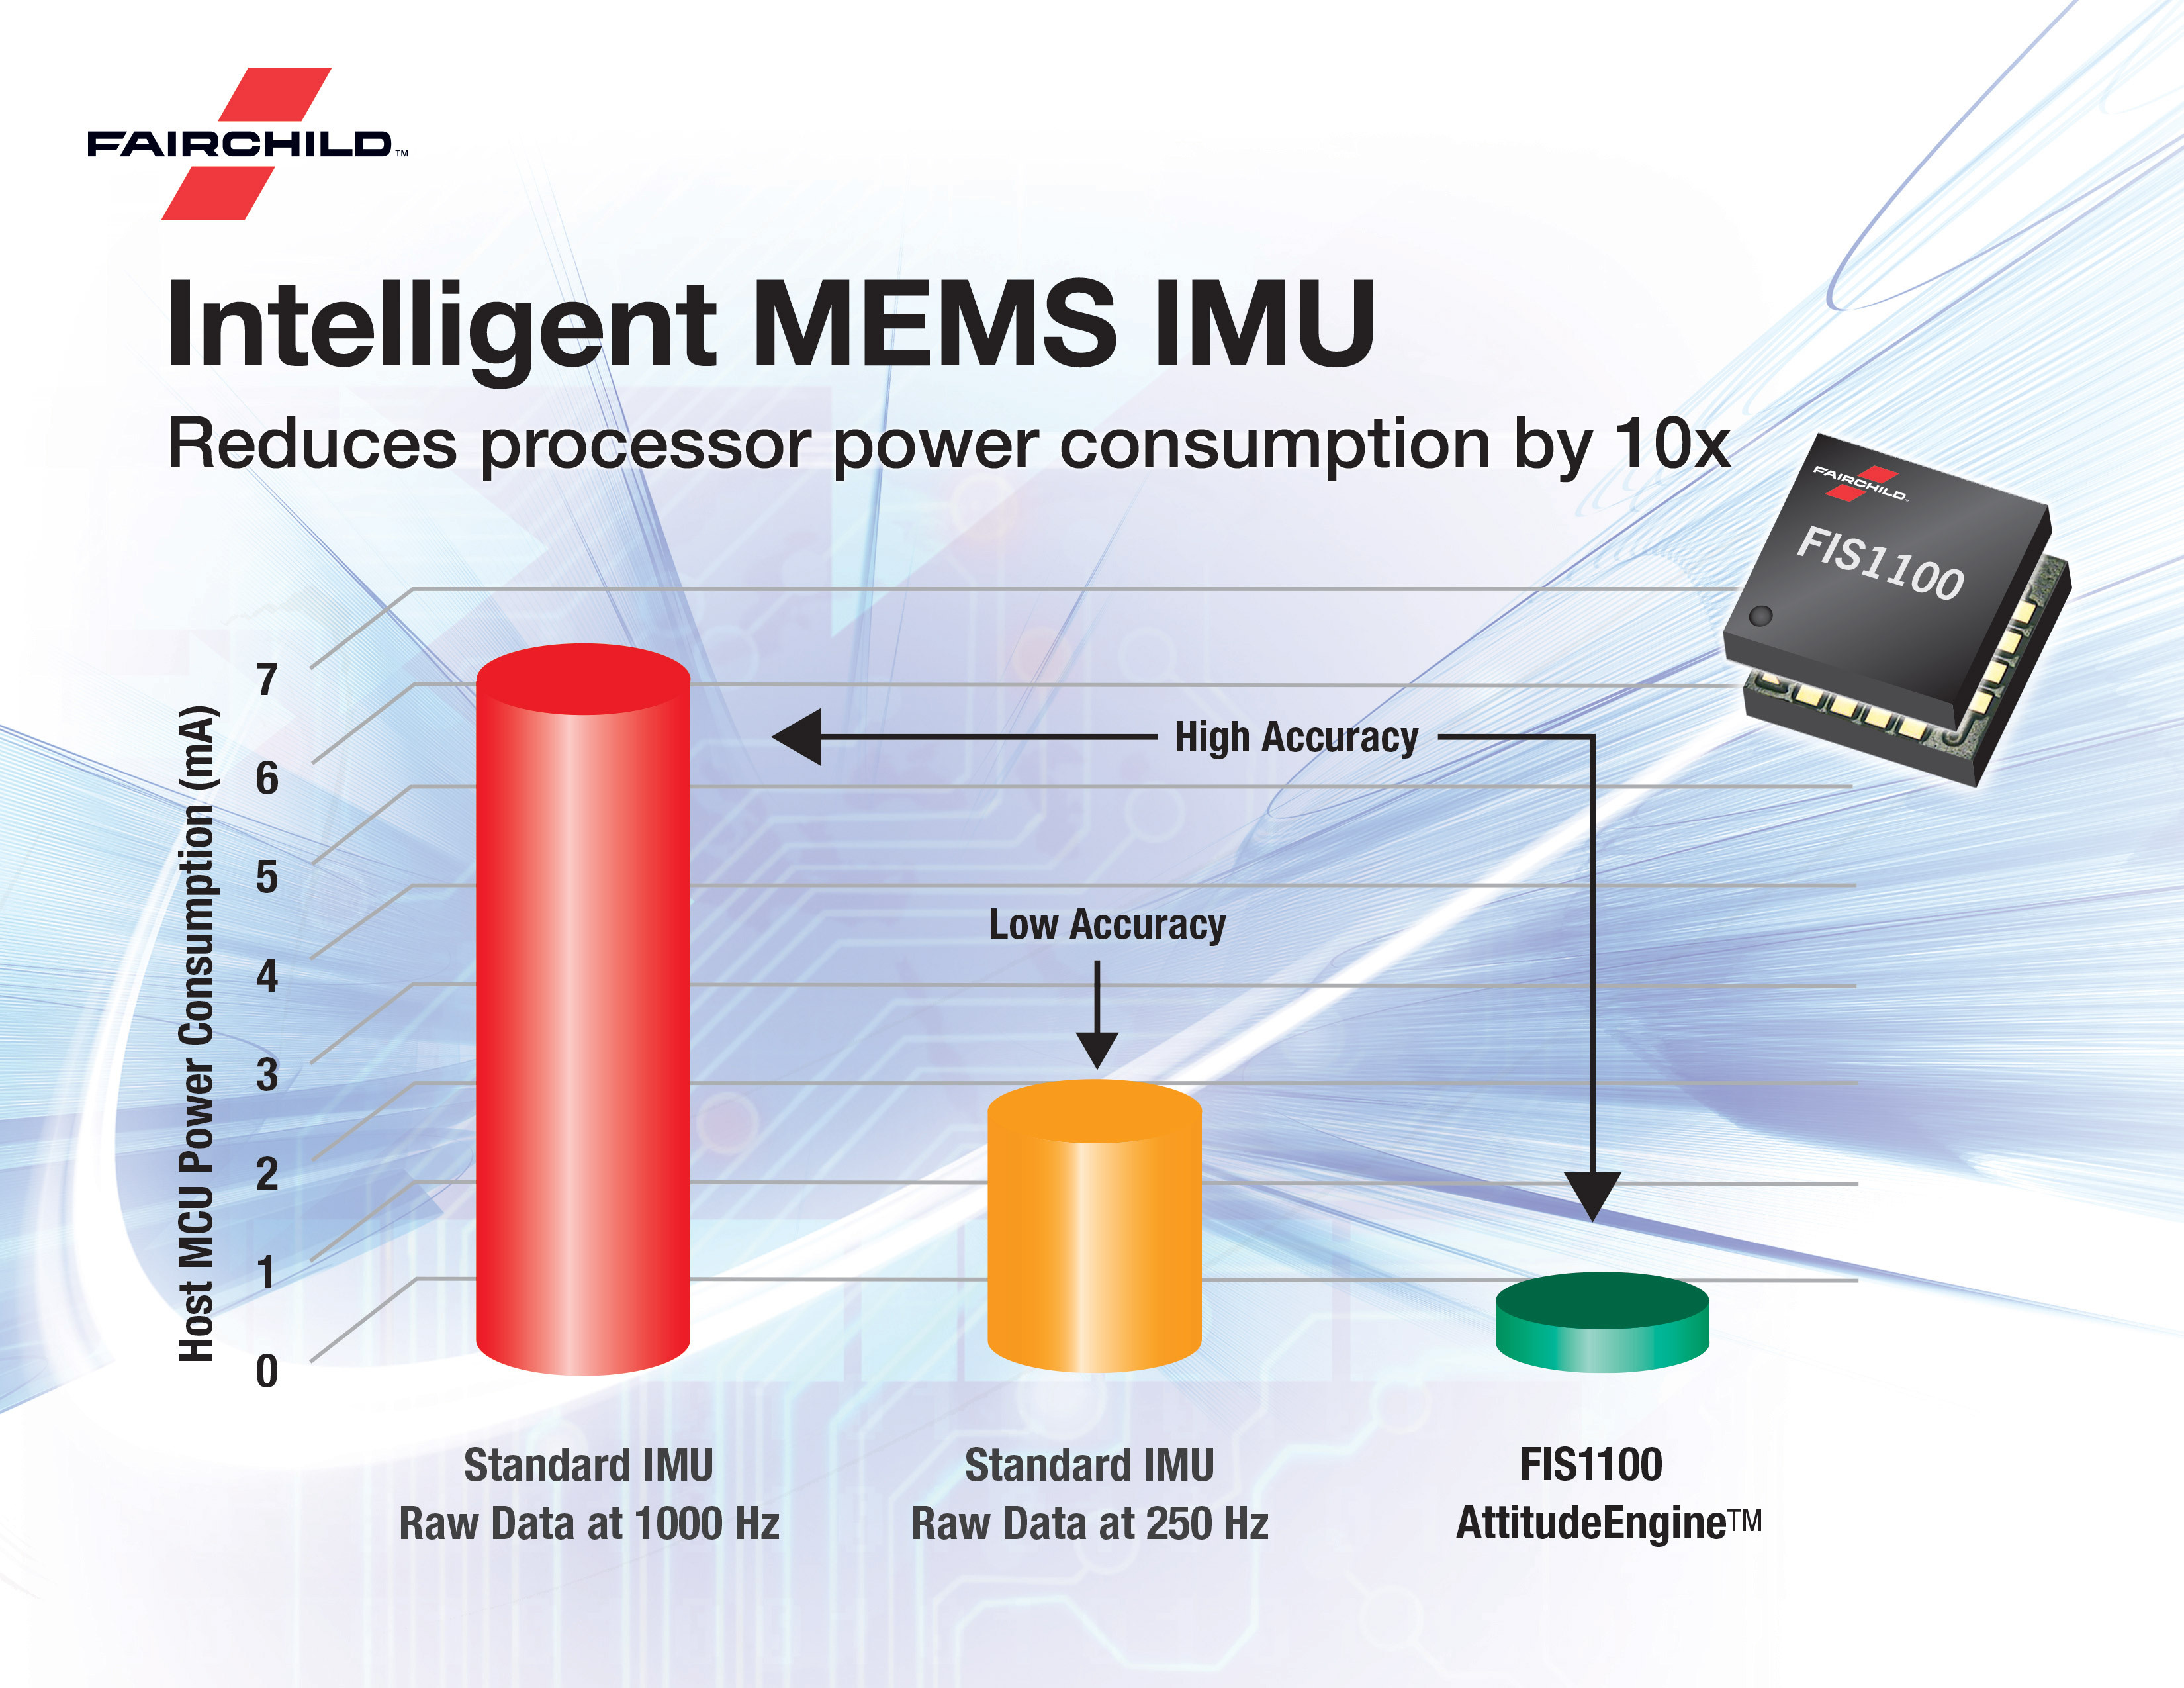 Fairchild Launches MEMS Product Line with Introduction of